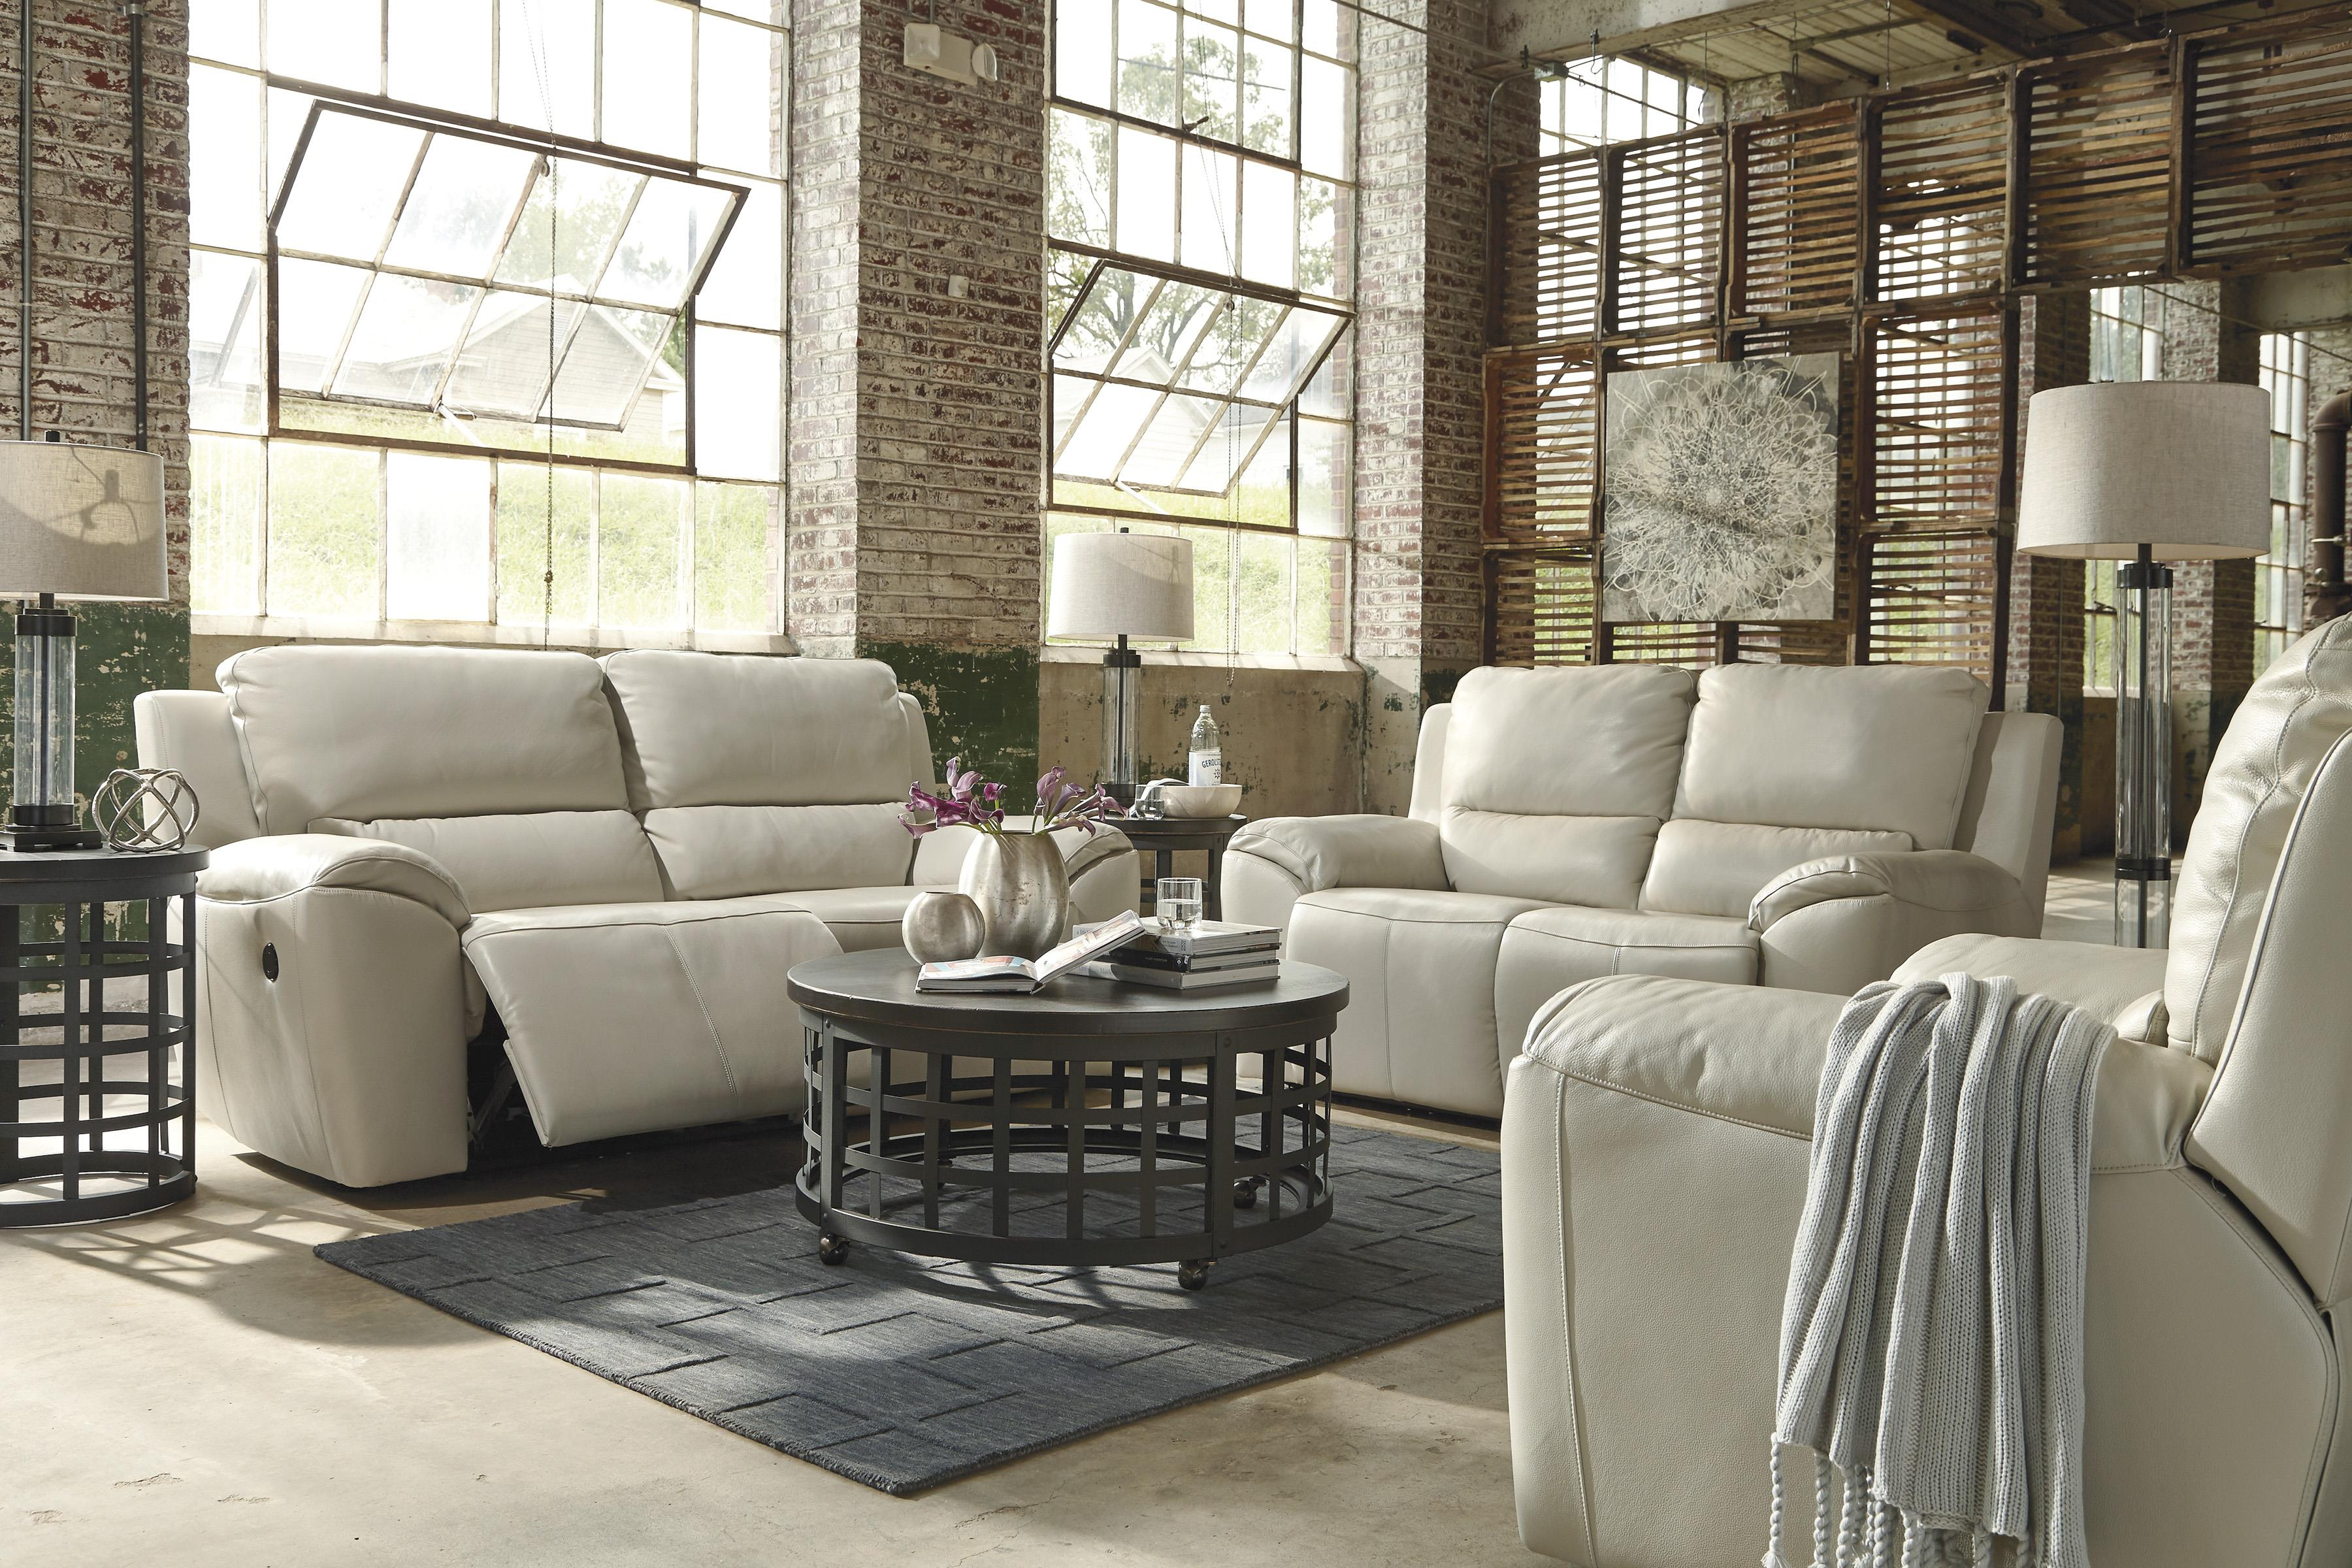 Signature Design by Ashley Valeton Reclining Living Room Group - Item Number: U73500 Living Room Group 4